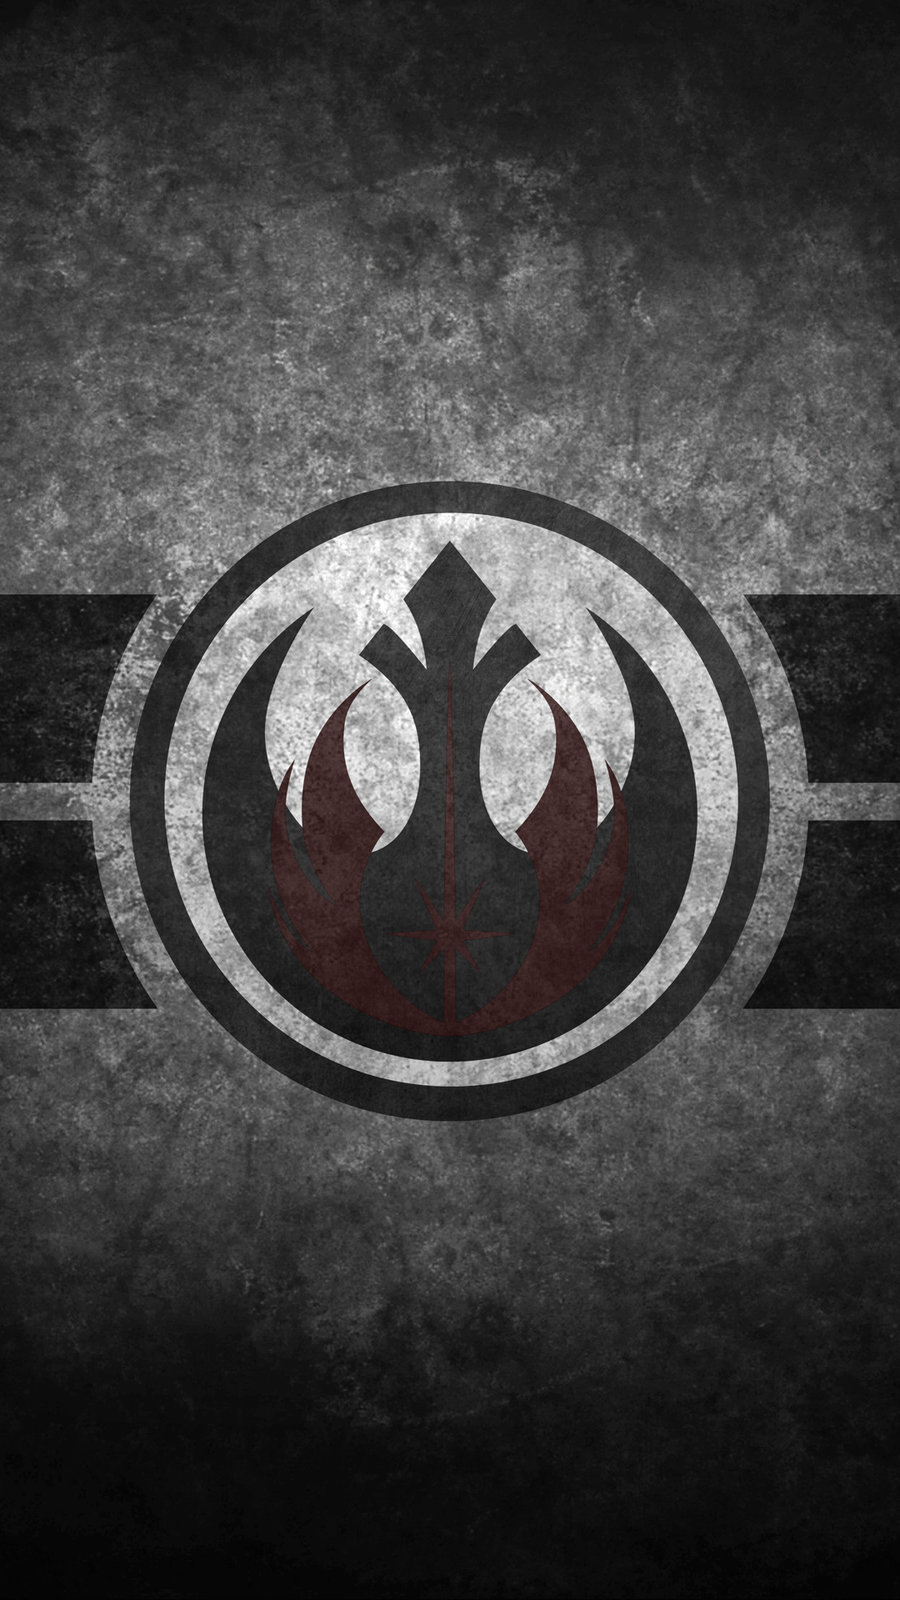 50 Star Wars Cell Phone Wallpaper On Wallpapersafari